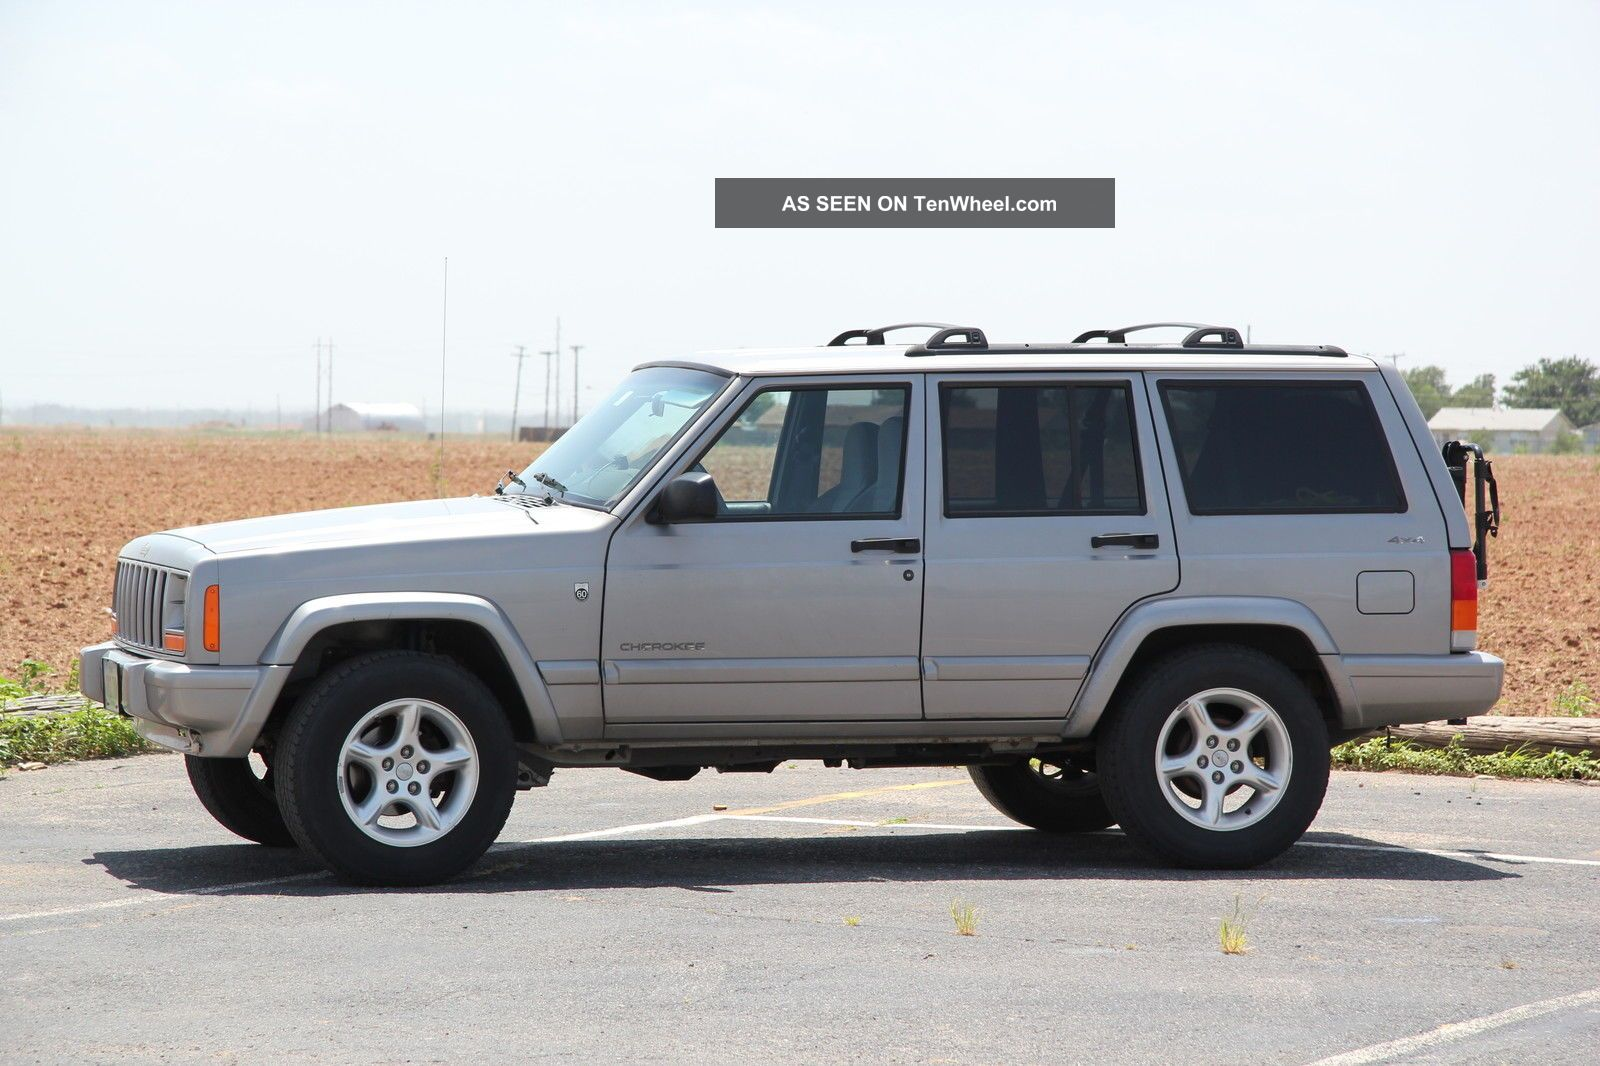 2001 Jeep Cherokee Xj - 60th Anniversary Edition Cherokee photo